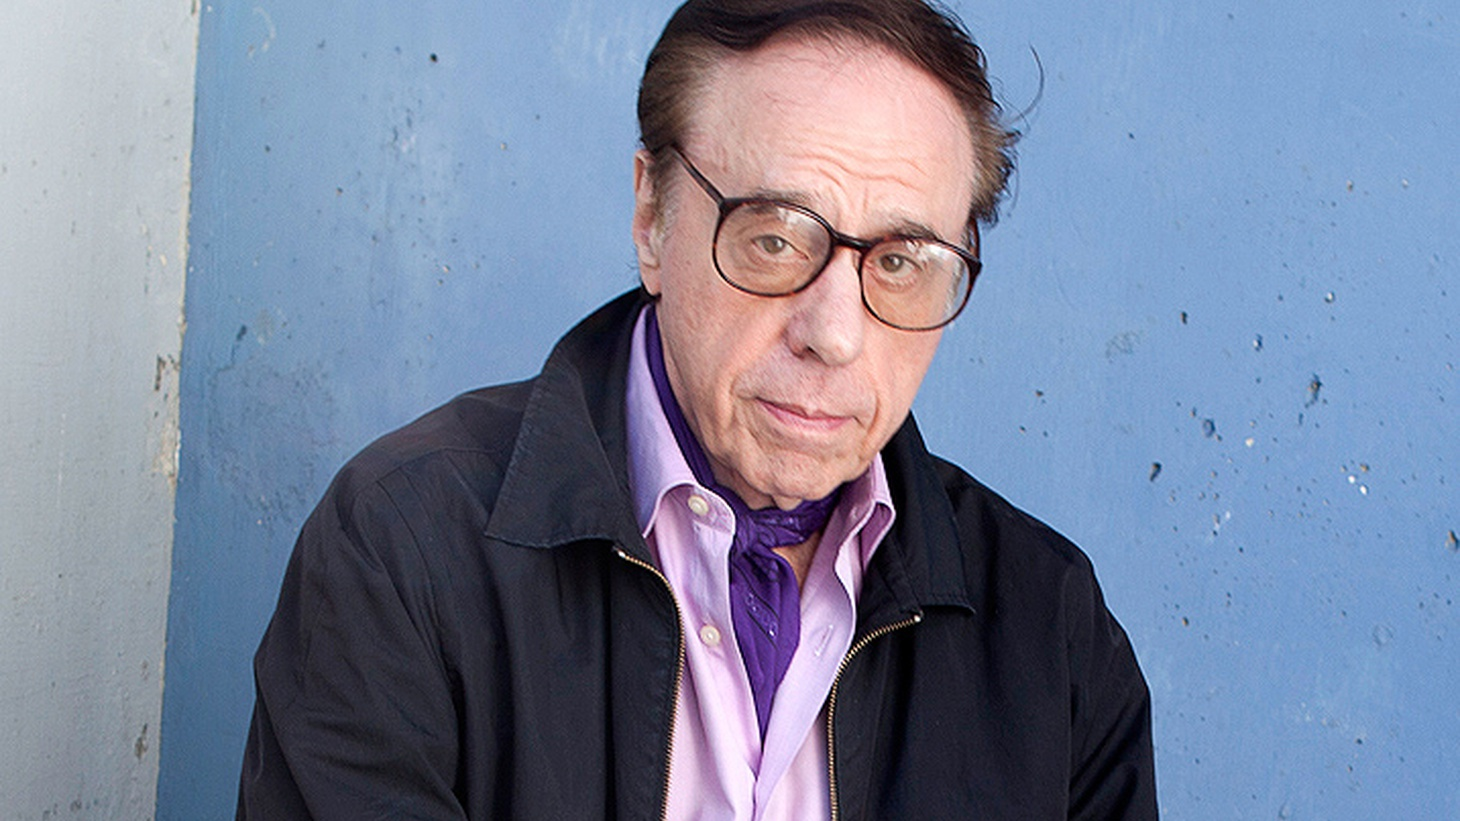 Peter Bogdanovich discusses the writing process for She's Funny That Way and how he assembled the cast for his latest release.